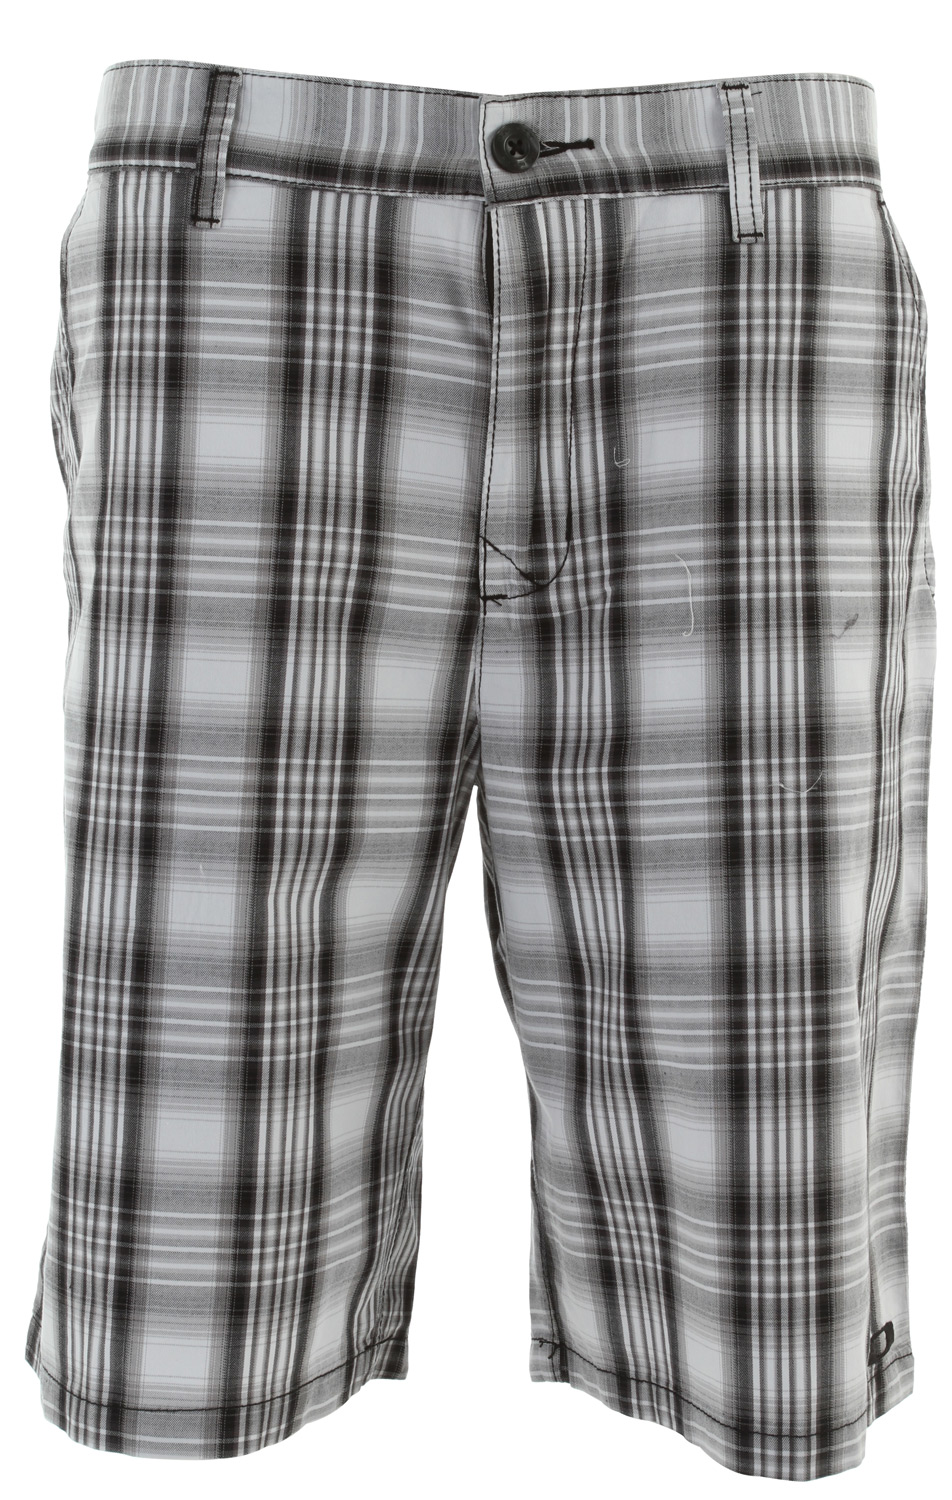 Yarn dye plaid short with zip fly, button closure, embroideries and back flat woven labelKey Features of the Oakley Plaid Short: 100% cotton Regular fit - $31.95